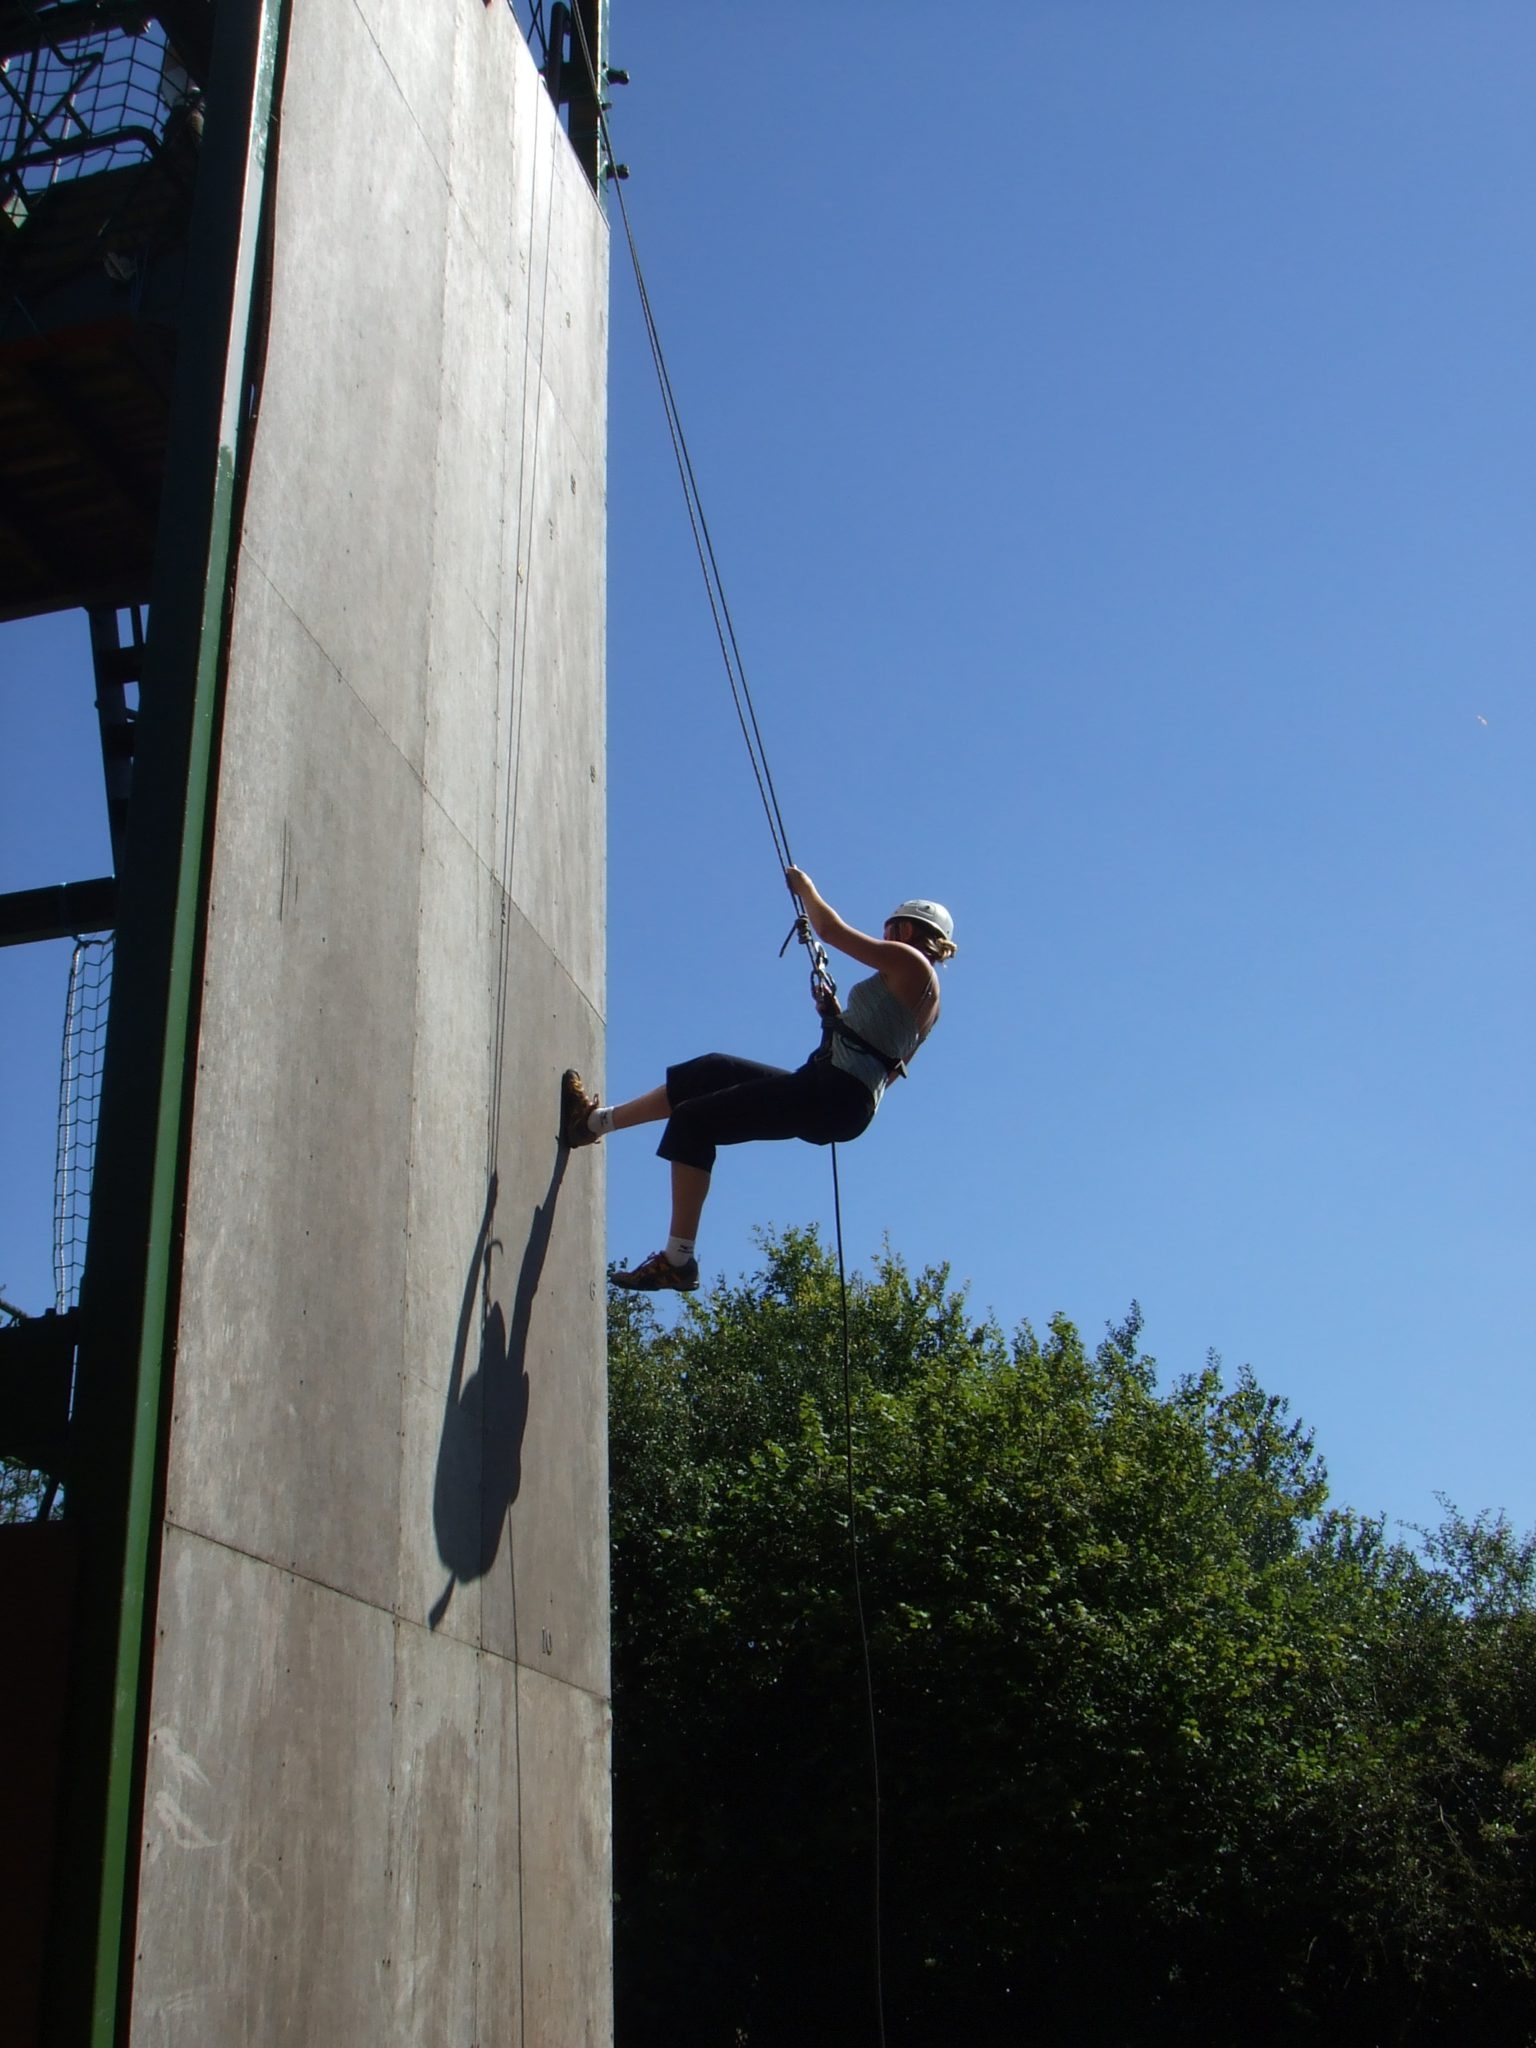 Sussex abseiling experience in East Grinstead: UK abseil lesson